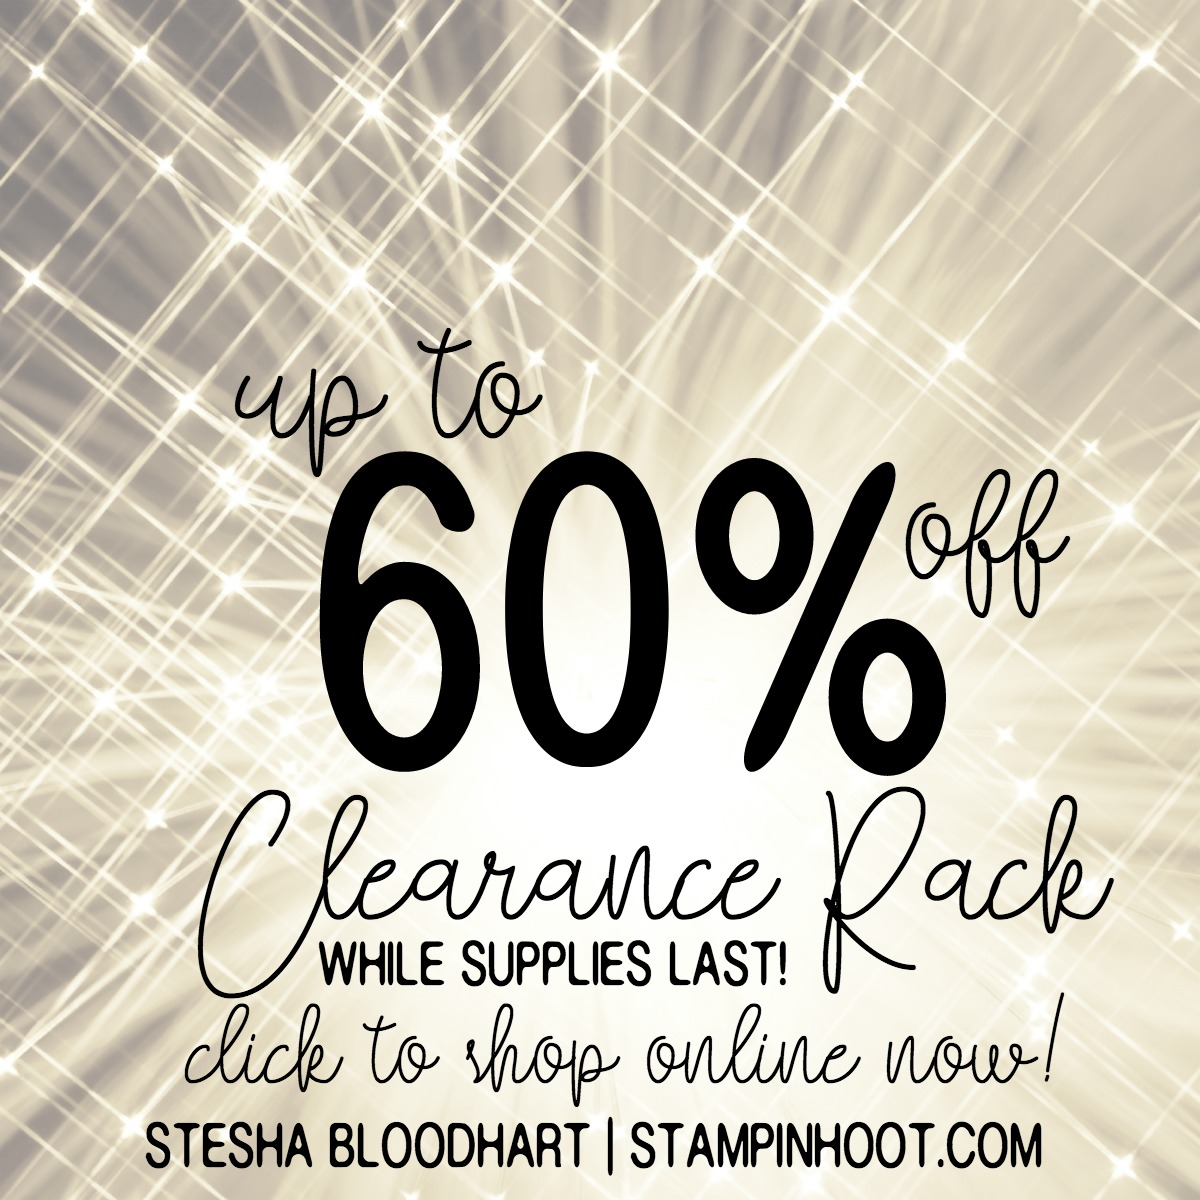 Stampin' Up! Clearance Rack Updated - SHOP ONLINE NOW, While Supplies Last #steshabloodhart #stampinhoot